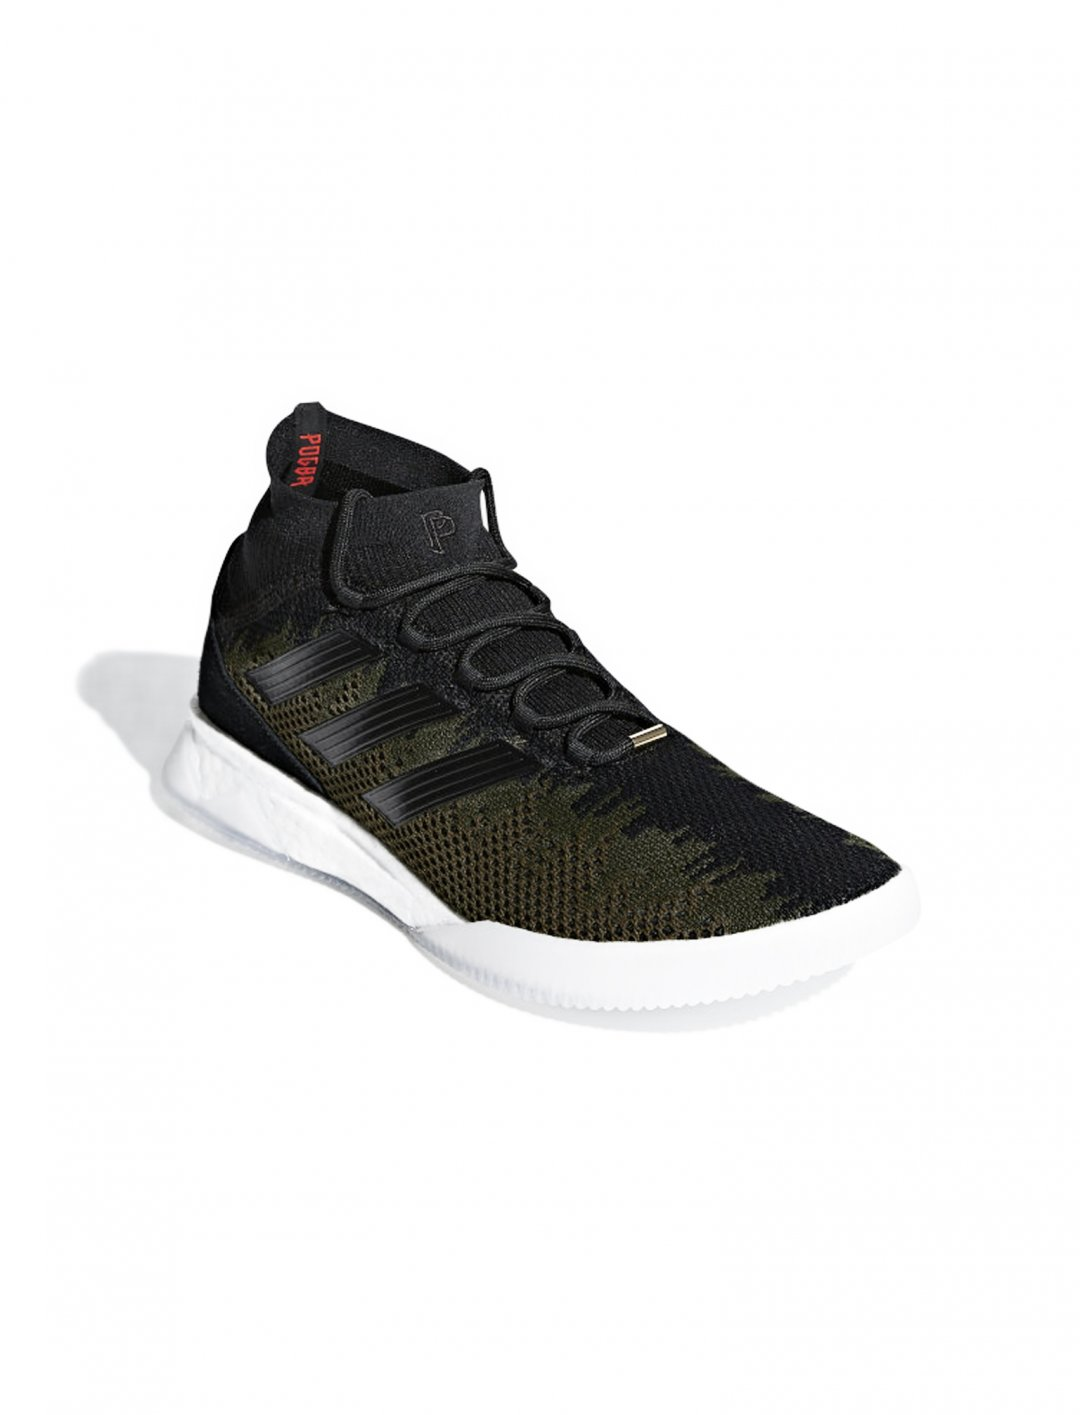 "Predator Shoes {""id"":5,""product_section_id"":1,""name"":""Clothing"",""order"":5} Adidas x Paul Pogba"